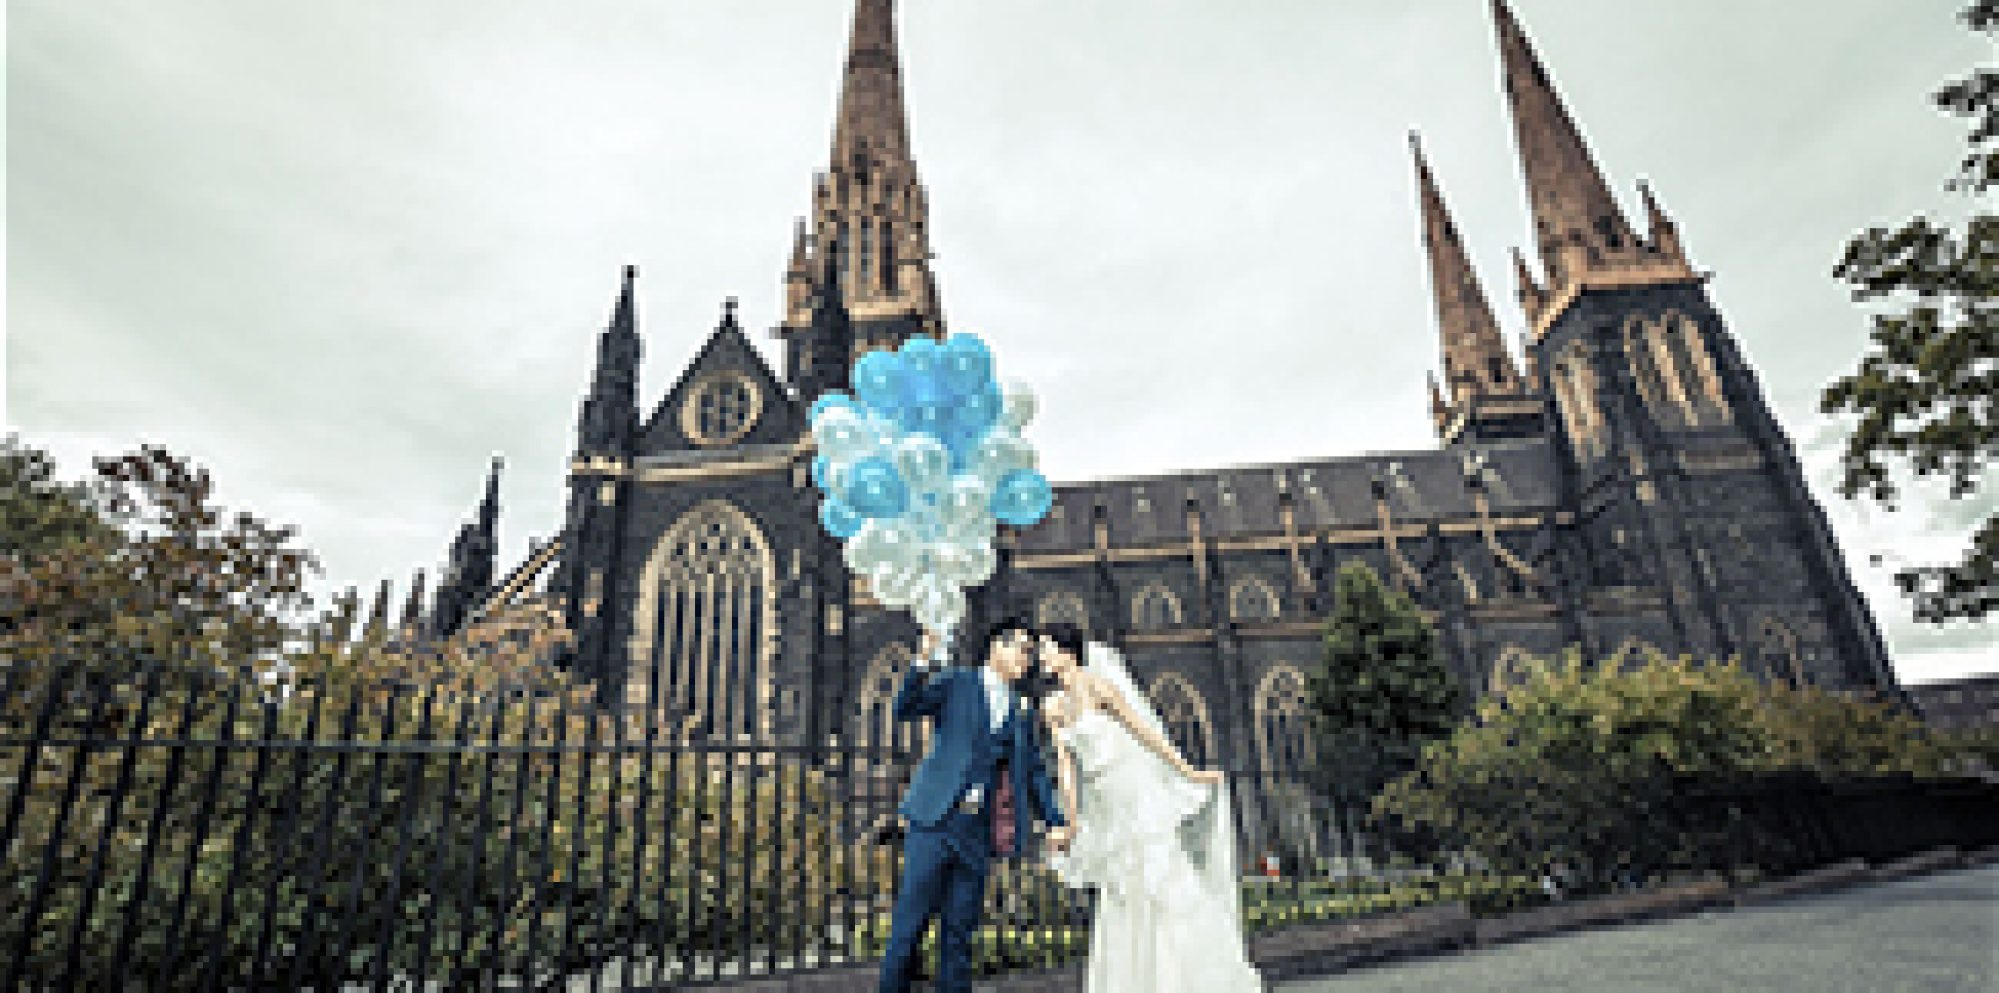 Yuan and wislon melbourne grand hyatt wedding video